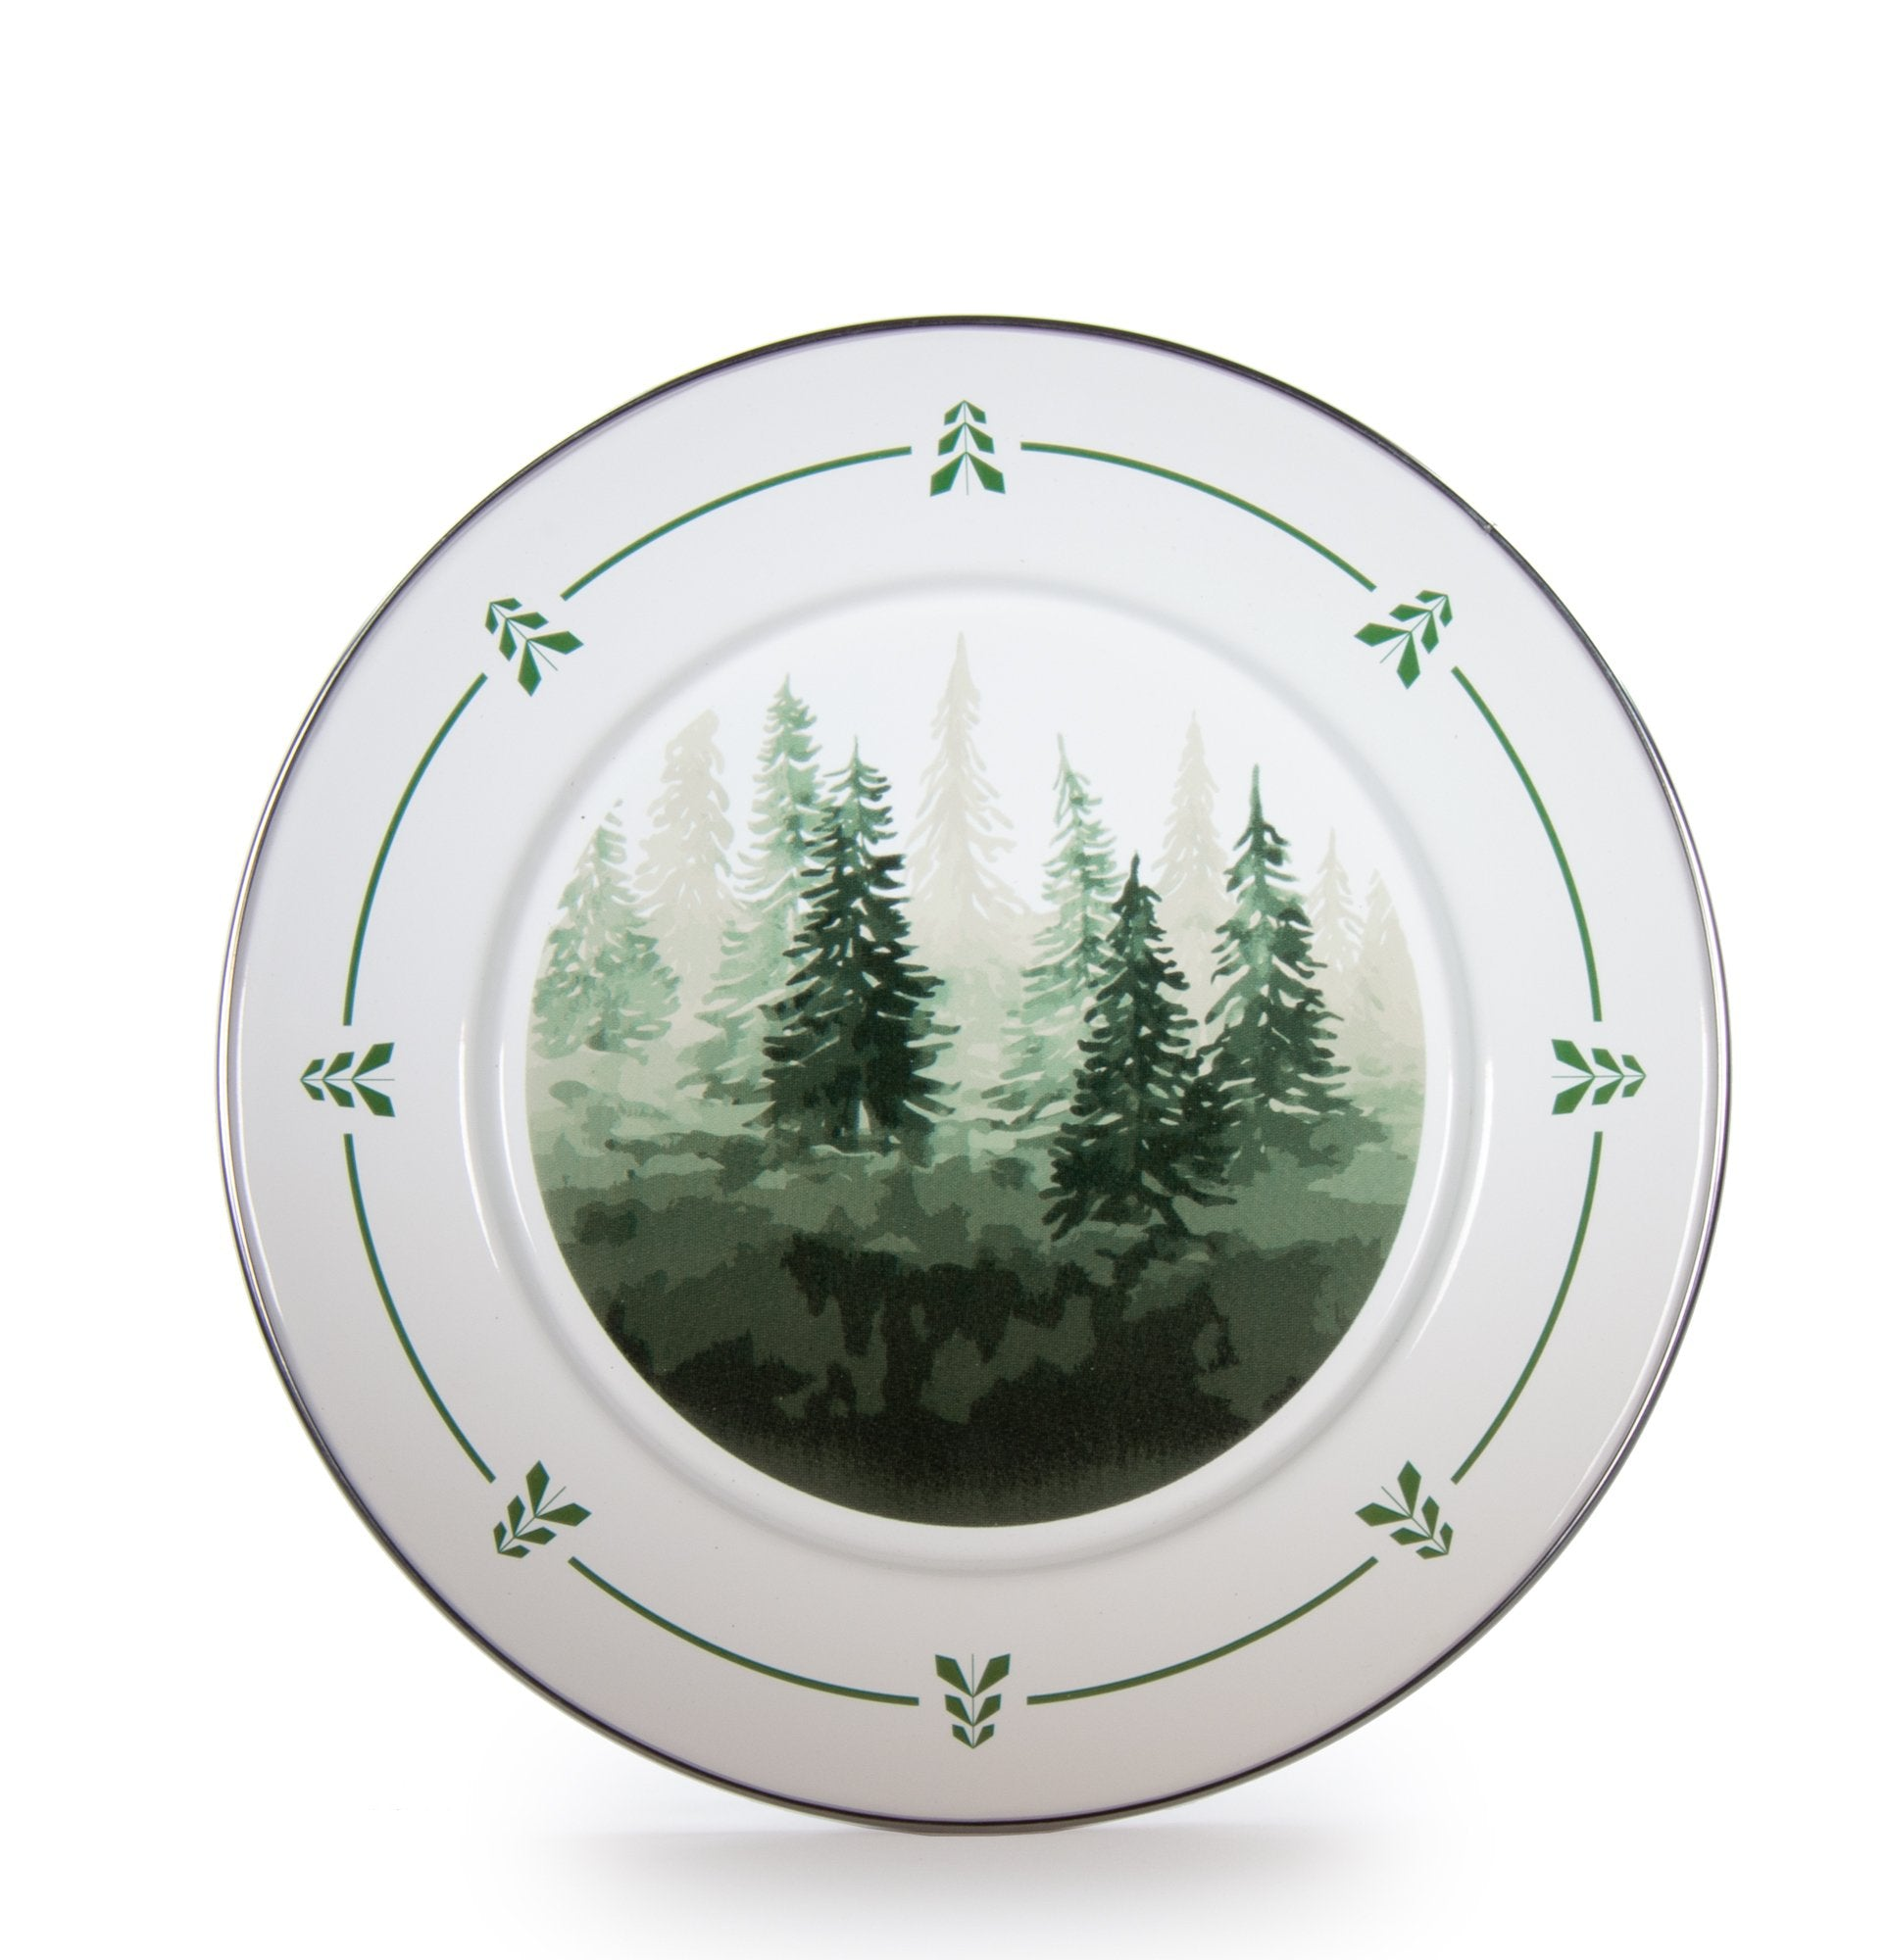 FT07S4 - Forest Trees Dinner Plates S-4